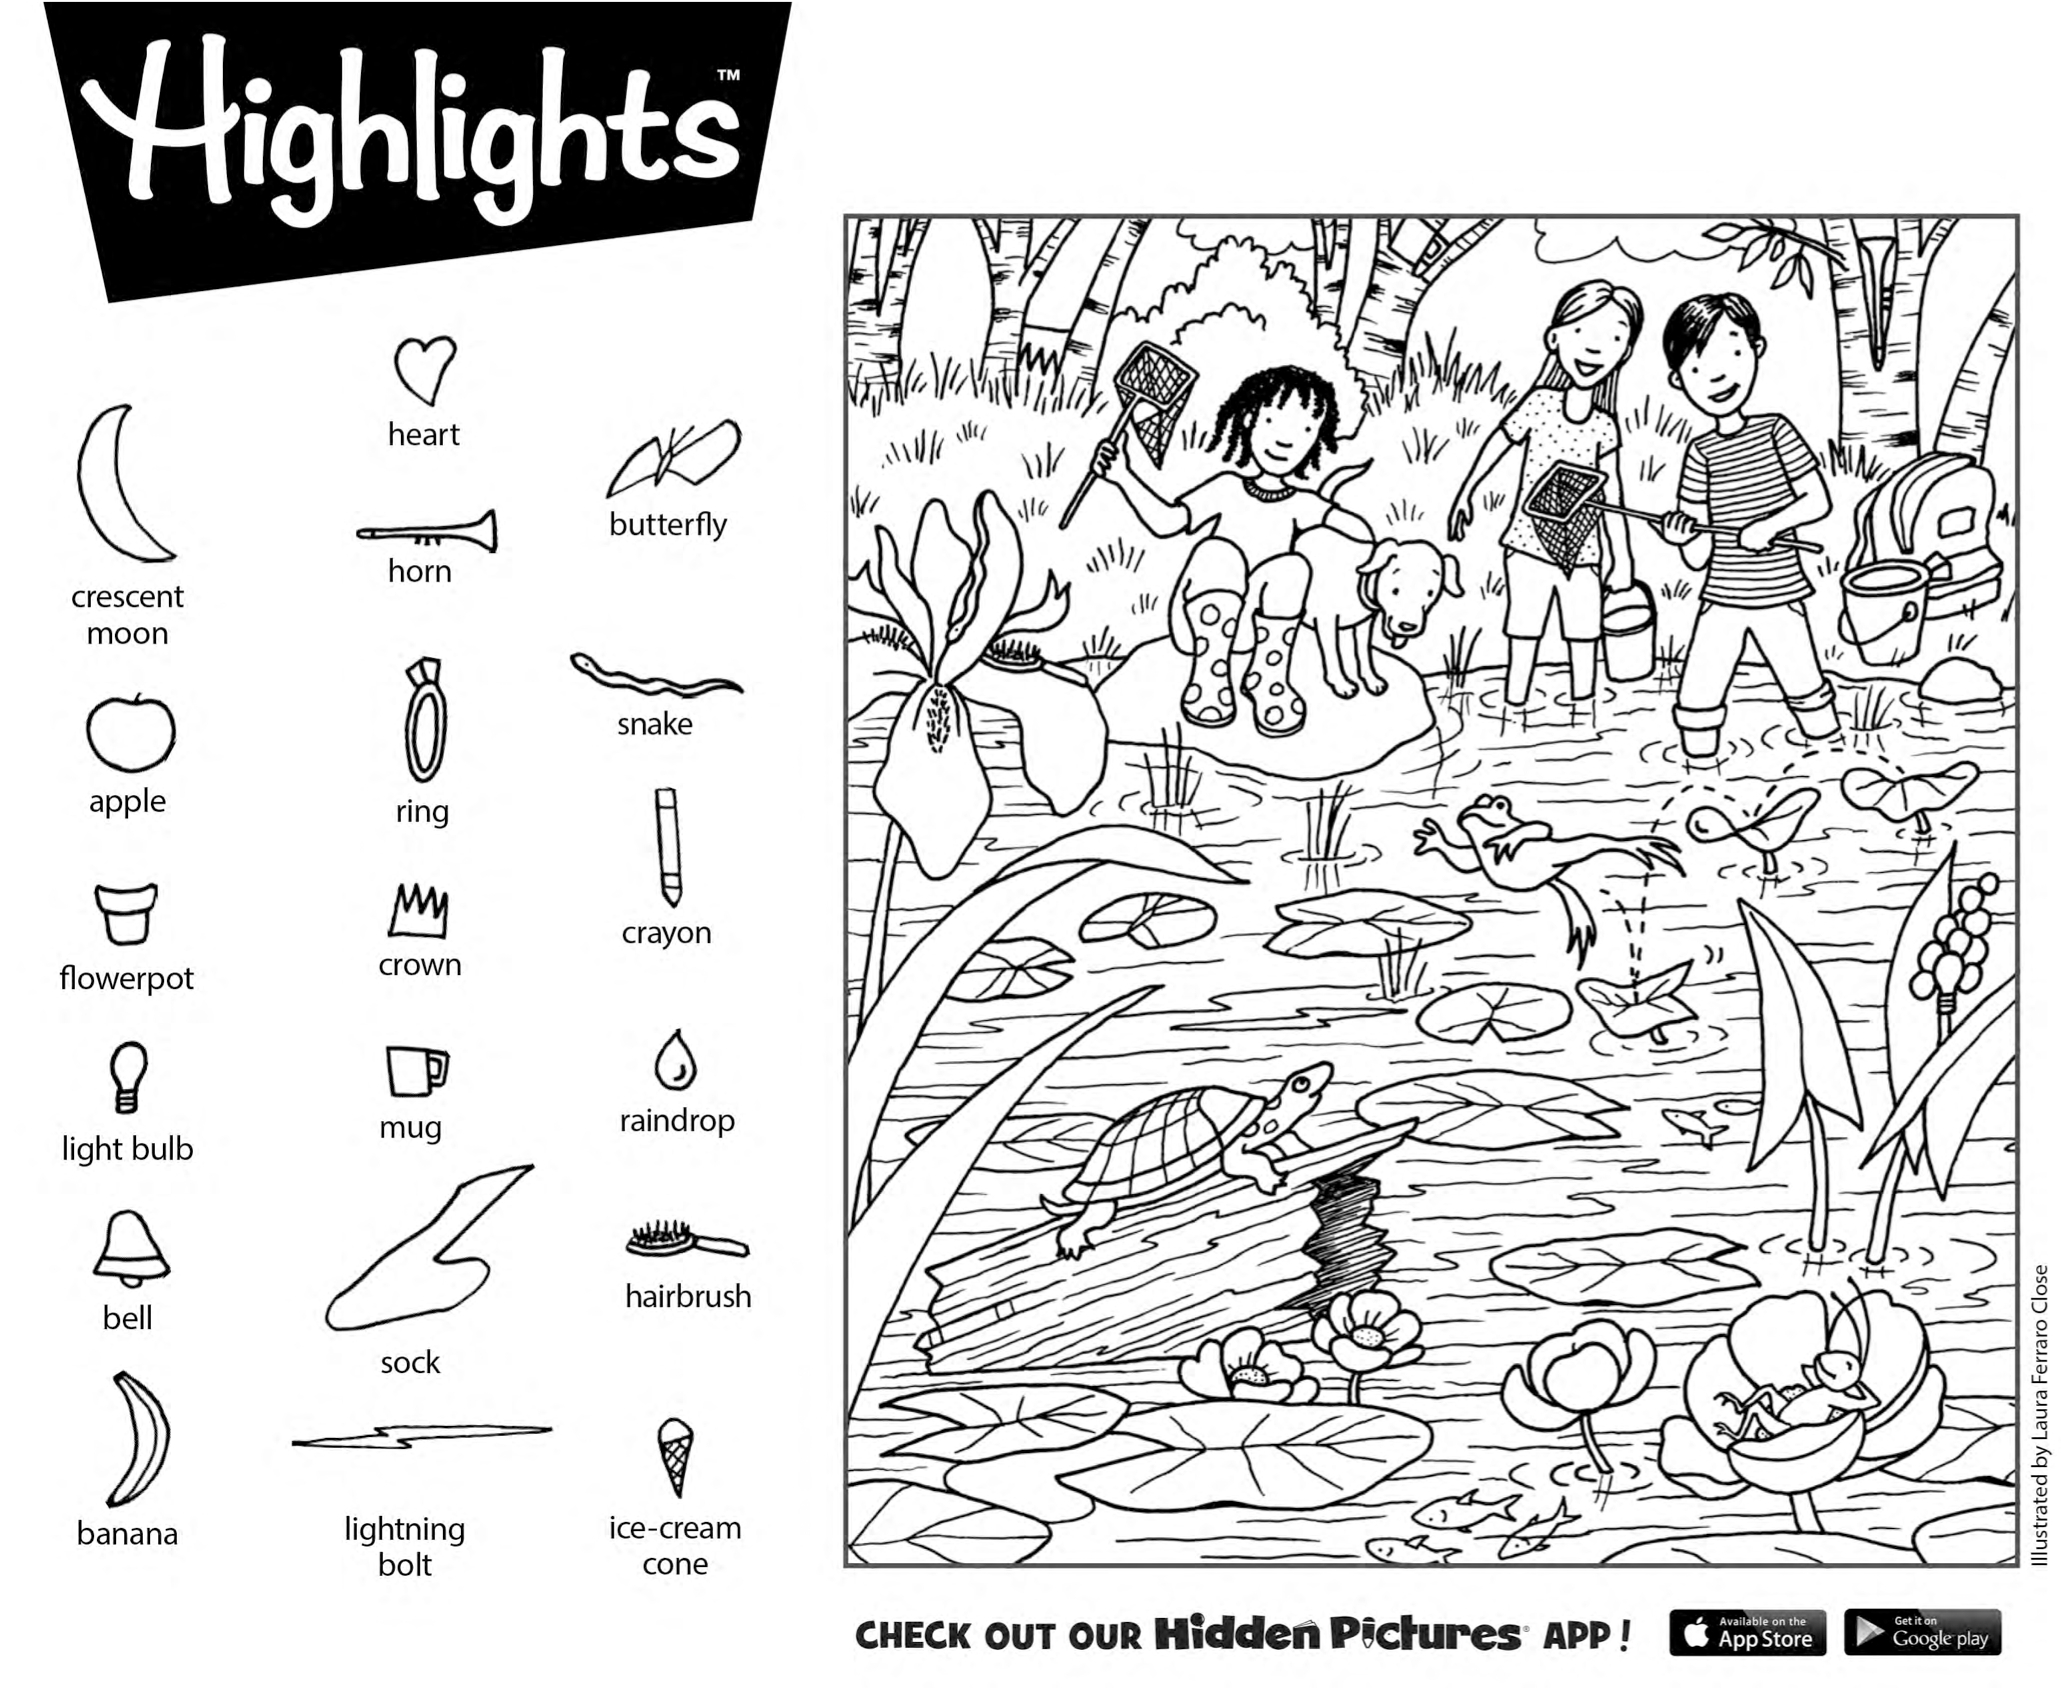 Download This Free Printable Hidden Pictures Puzzle From Highlights - Free Printable Highlights Hidden Pictures